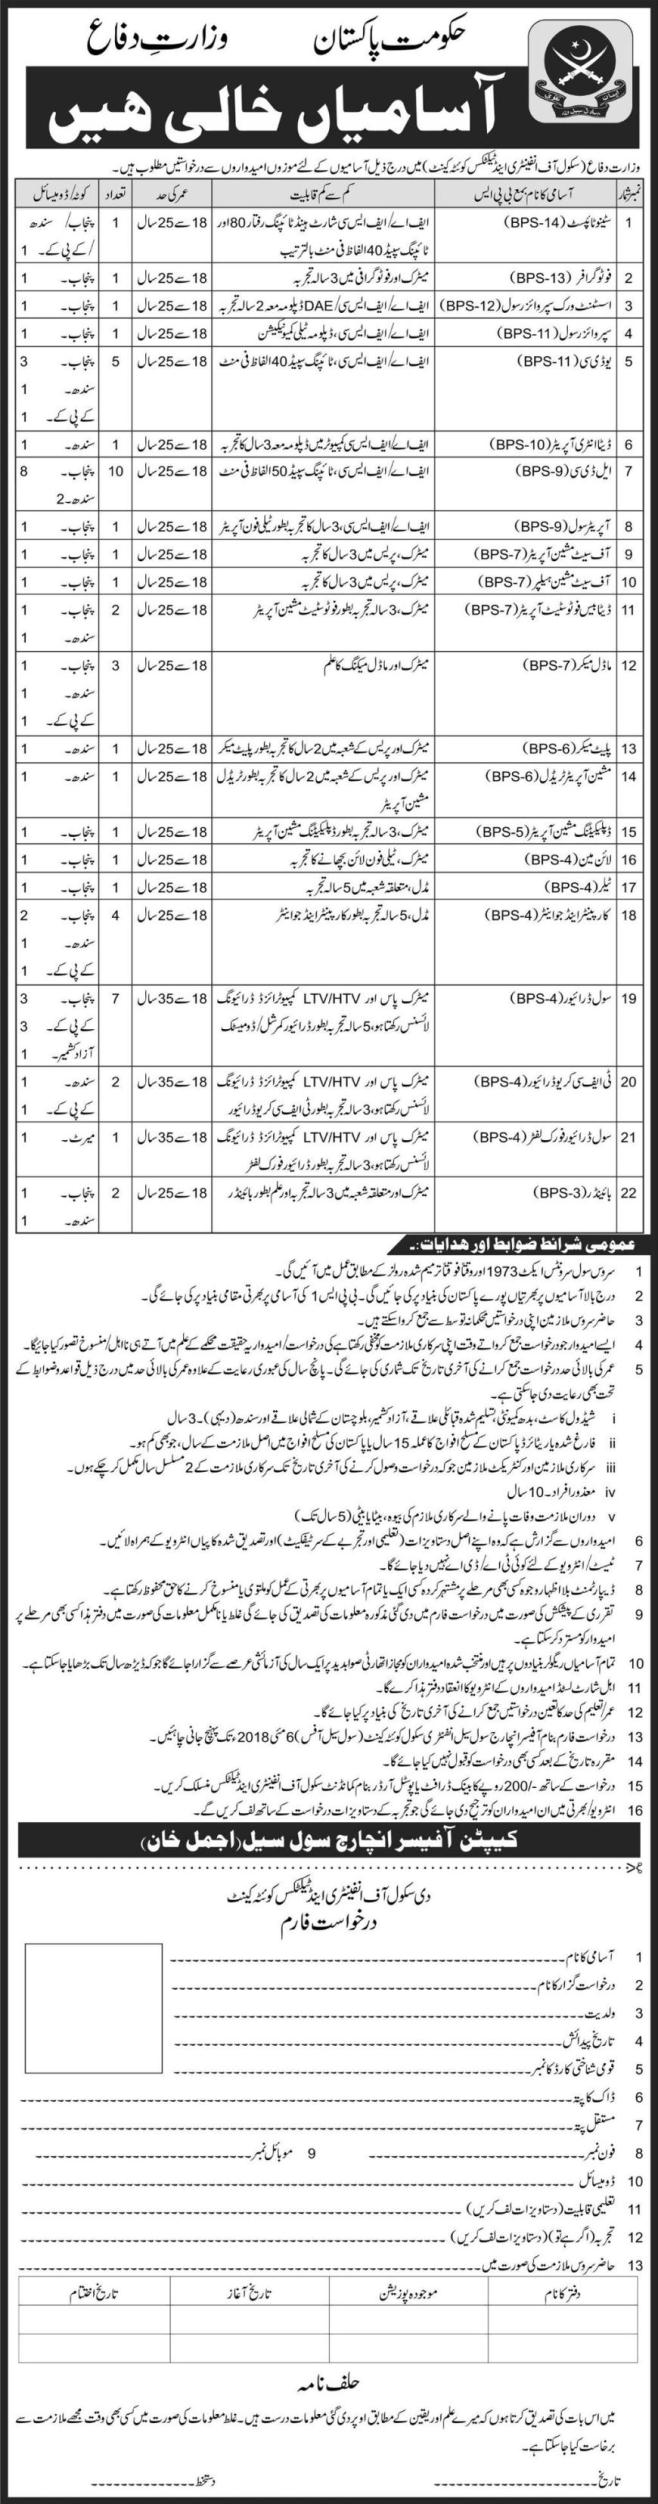 Jobs in Ministry of Defense Government of Pakistan 22 April 2018 Daily Express Newspaper